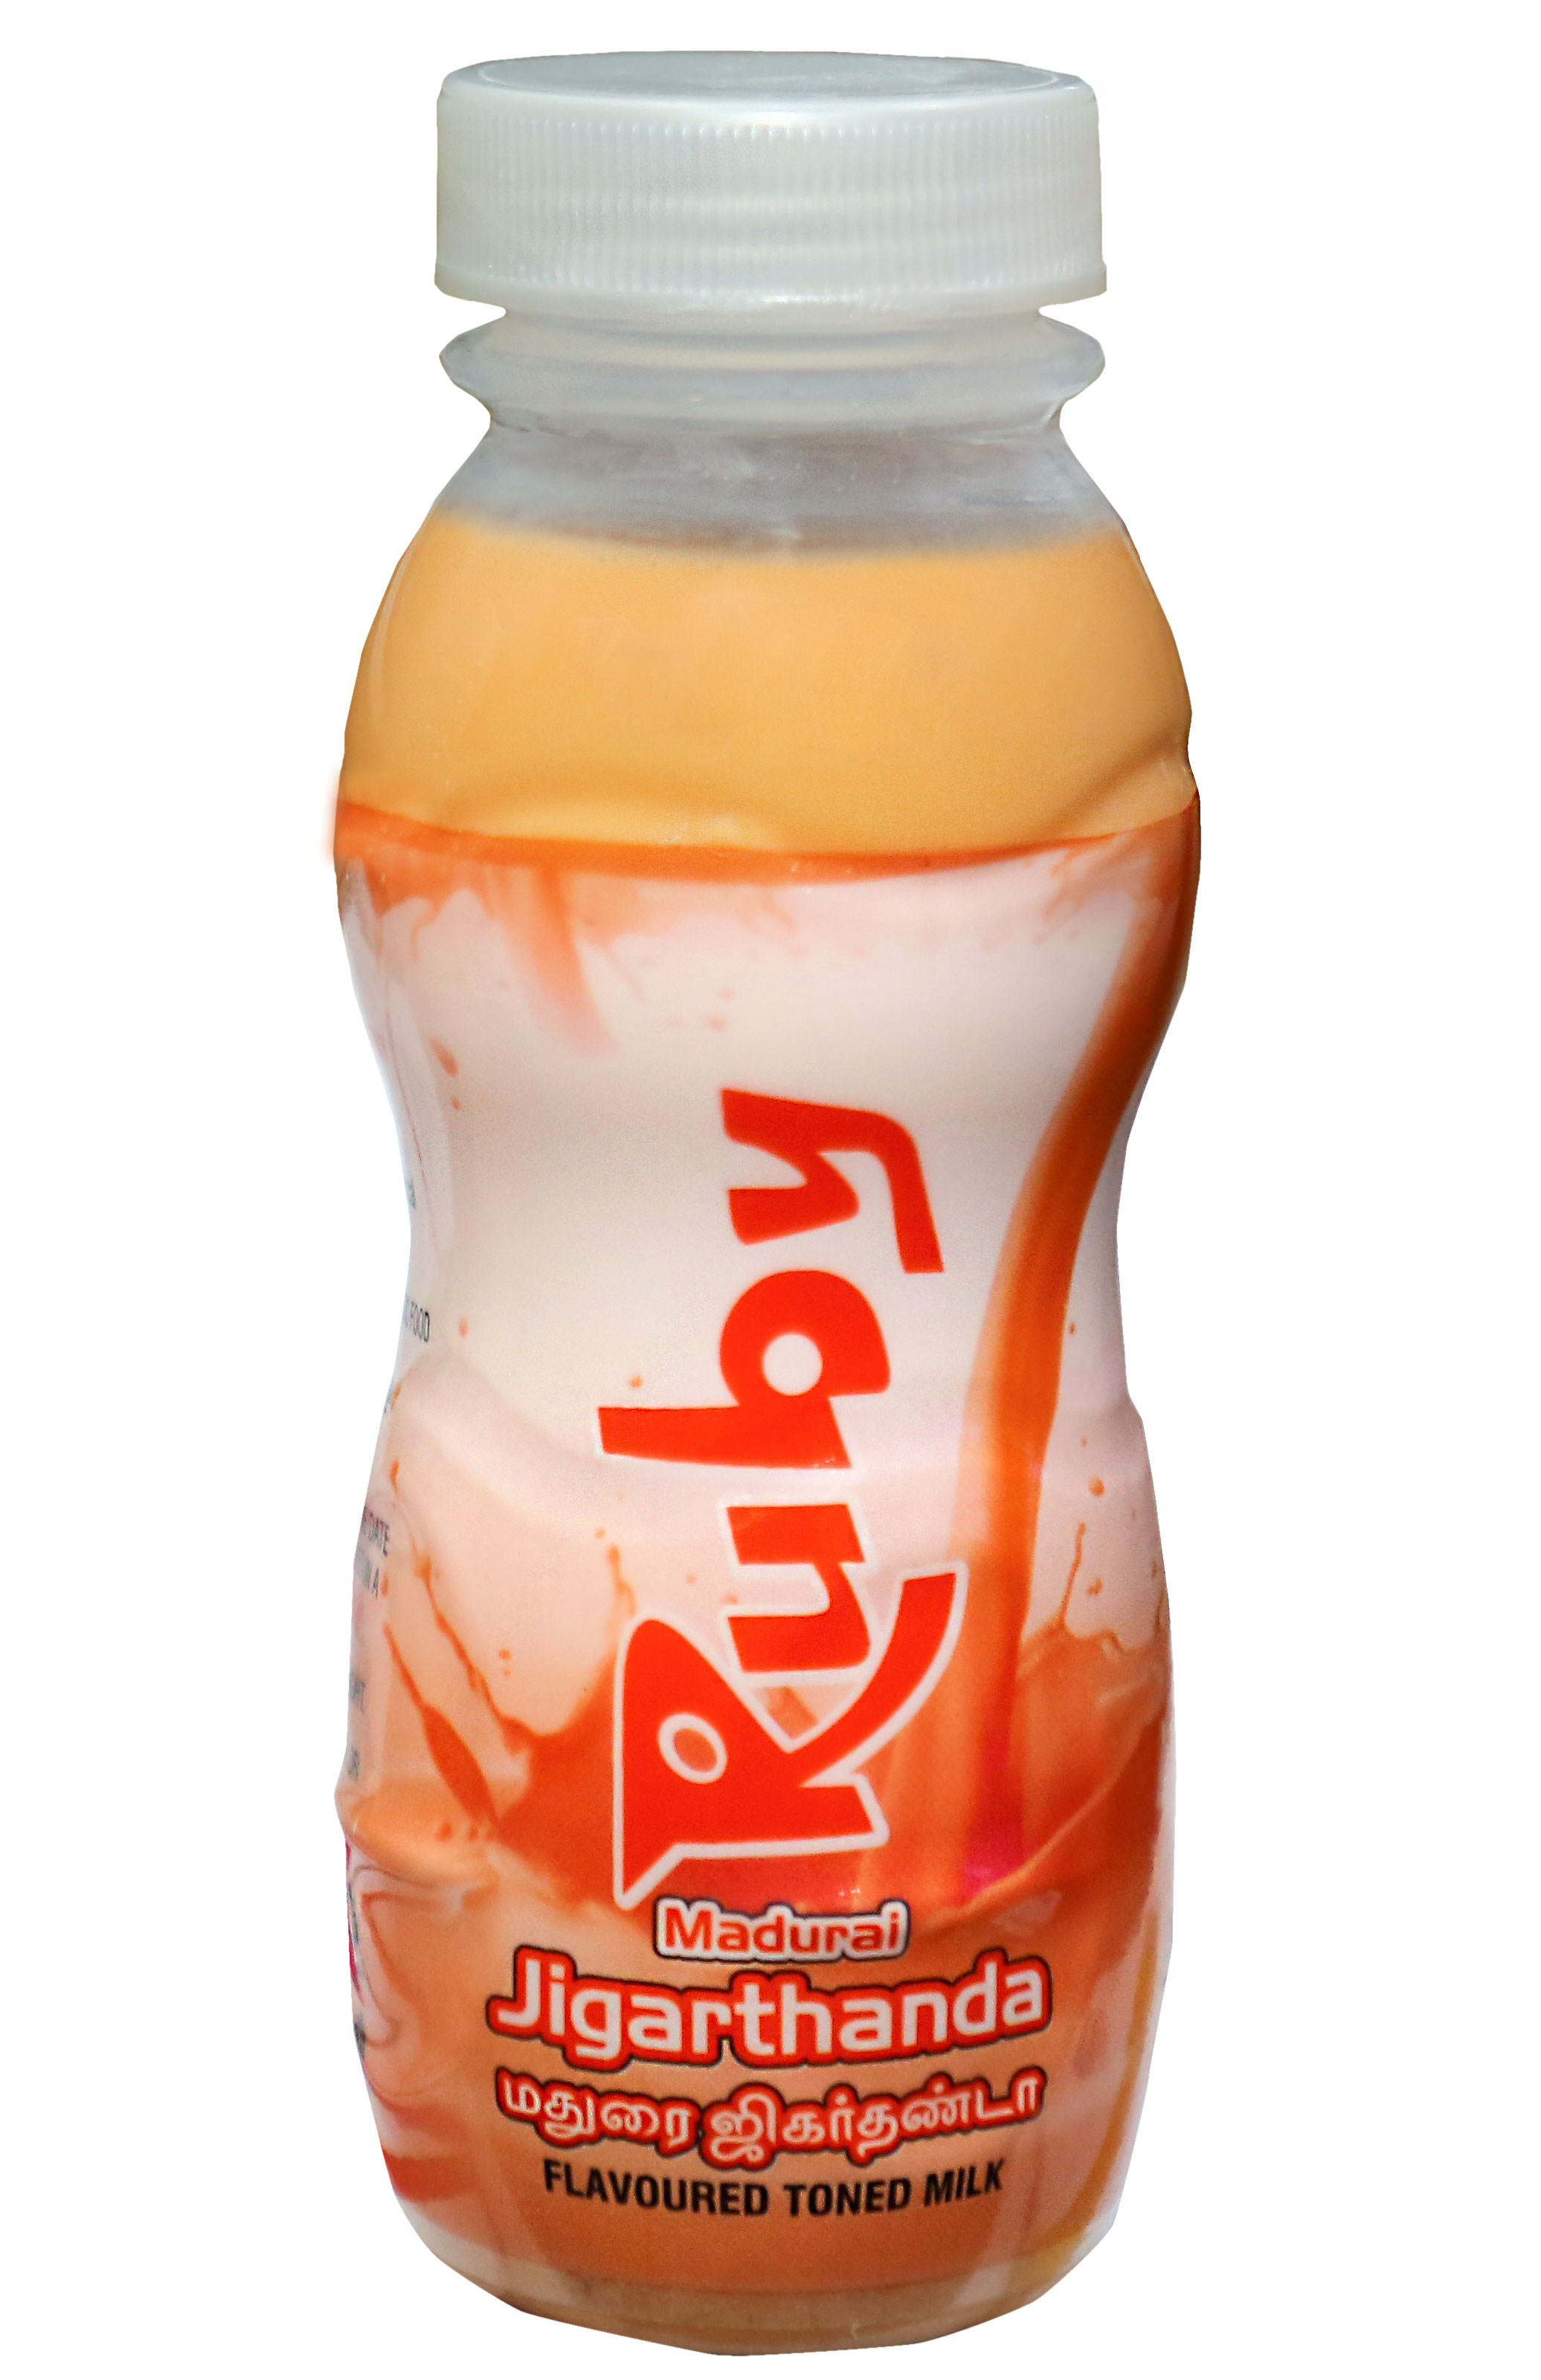 Ruby Jigarthanda milk 200ml